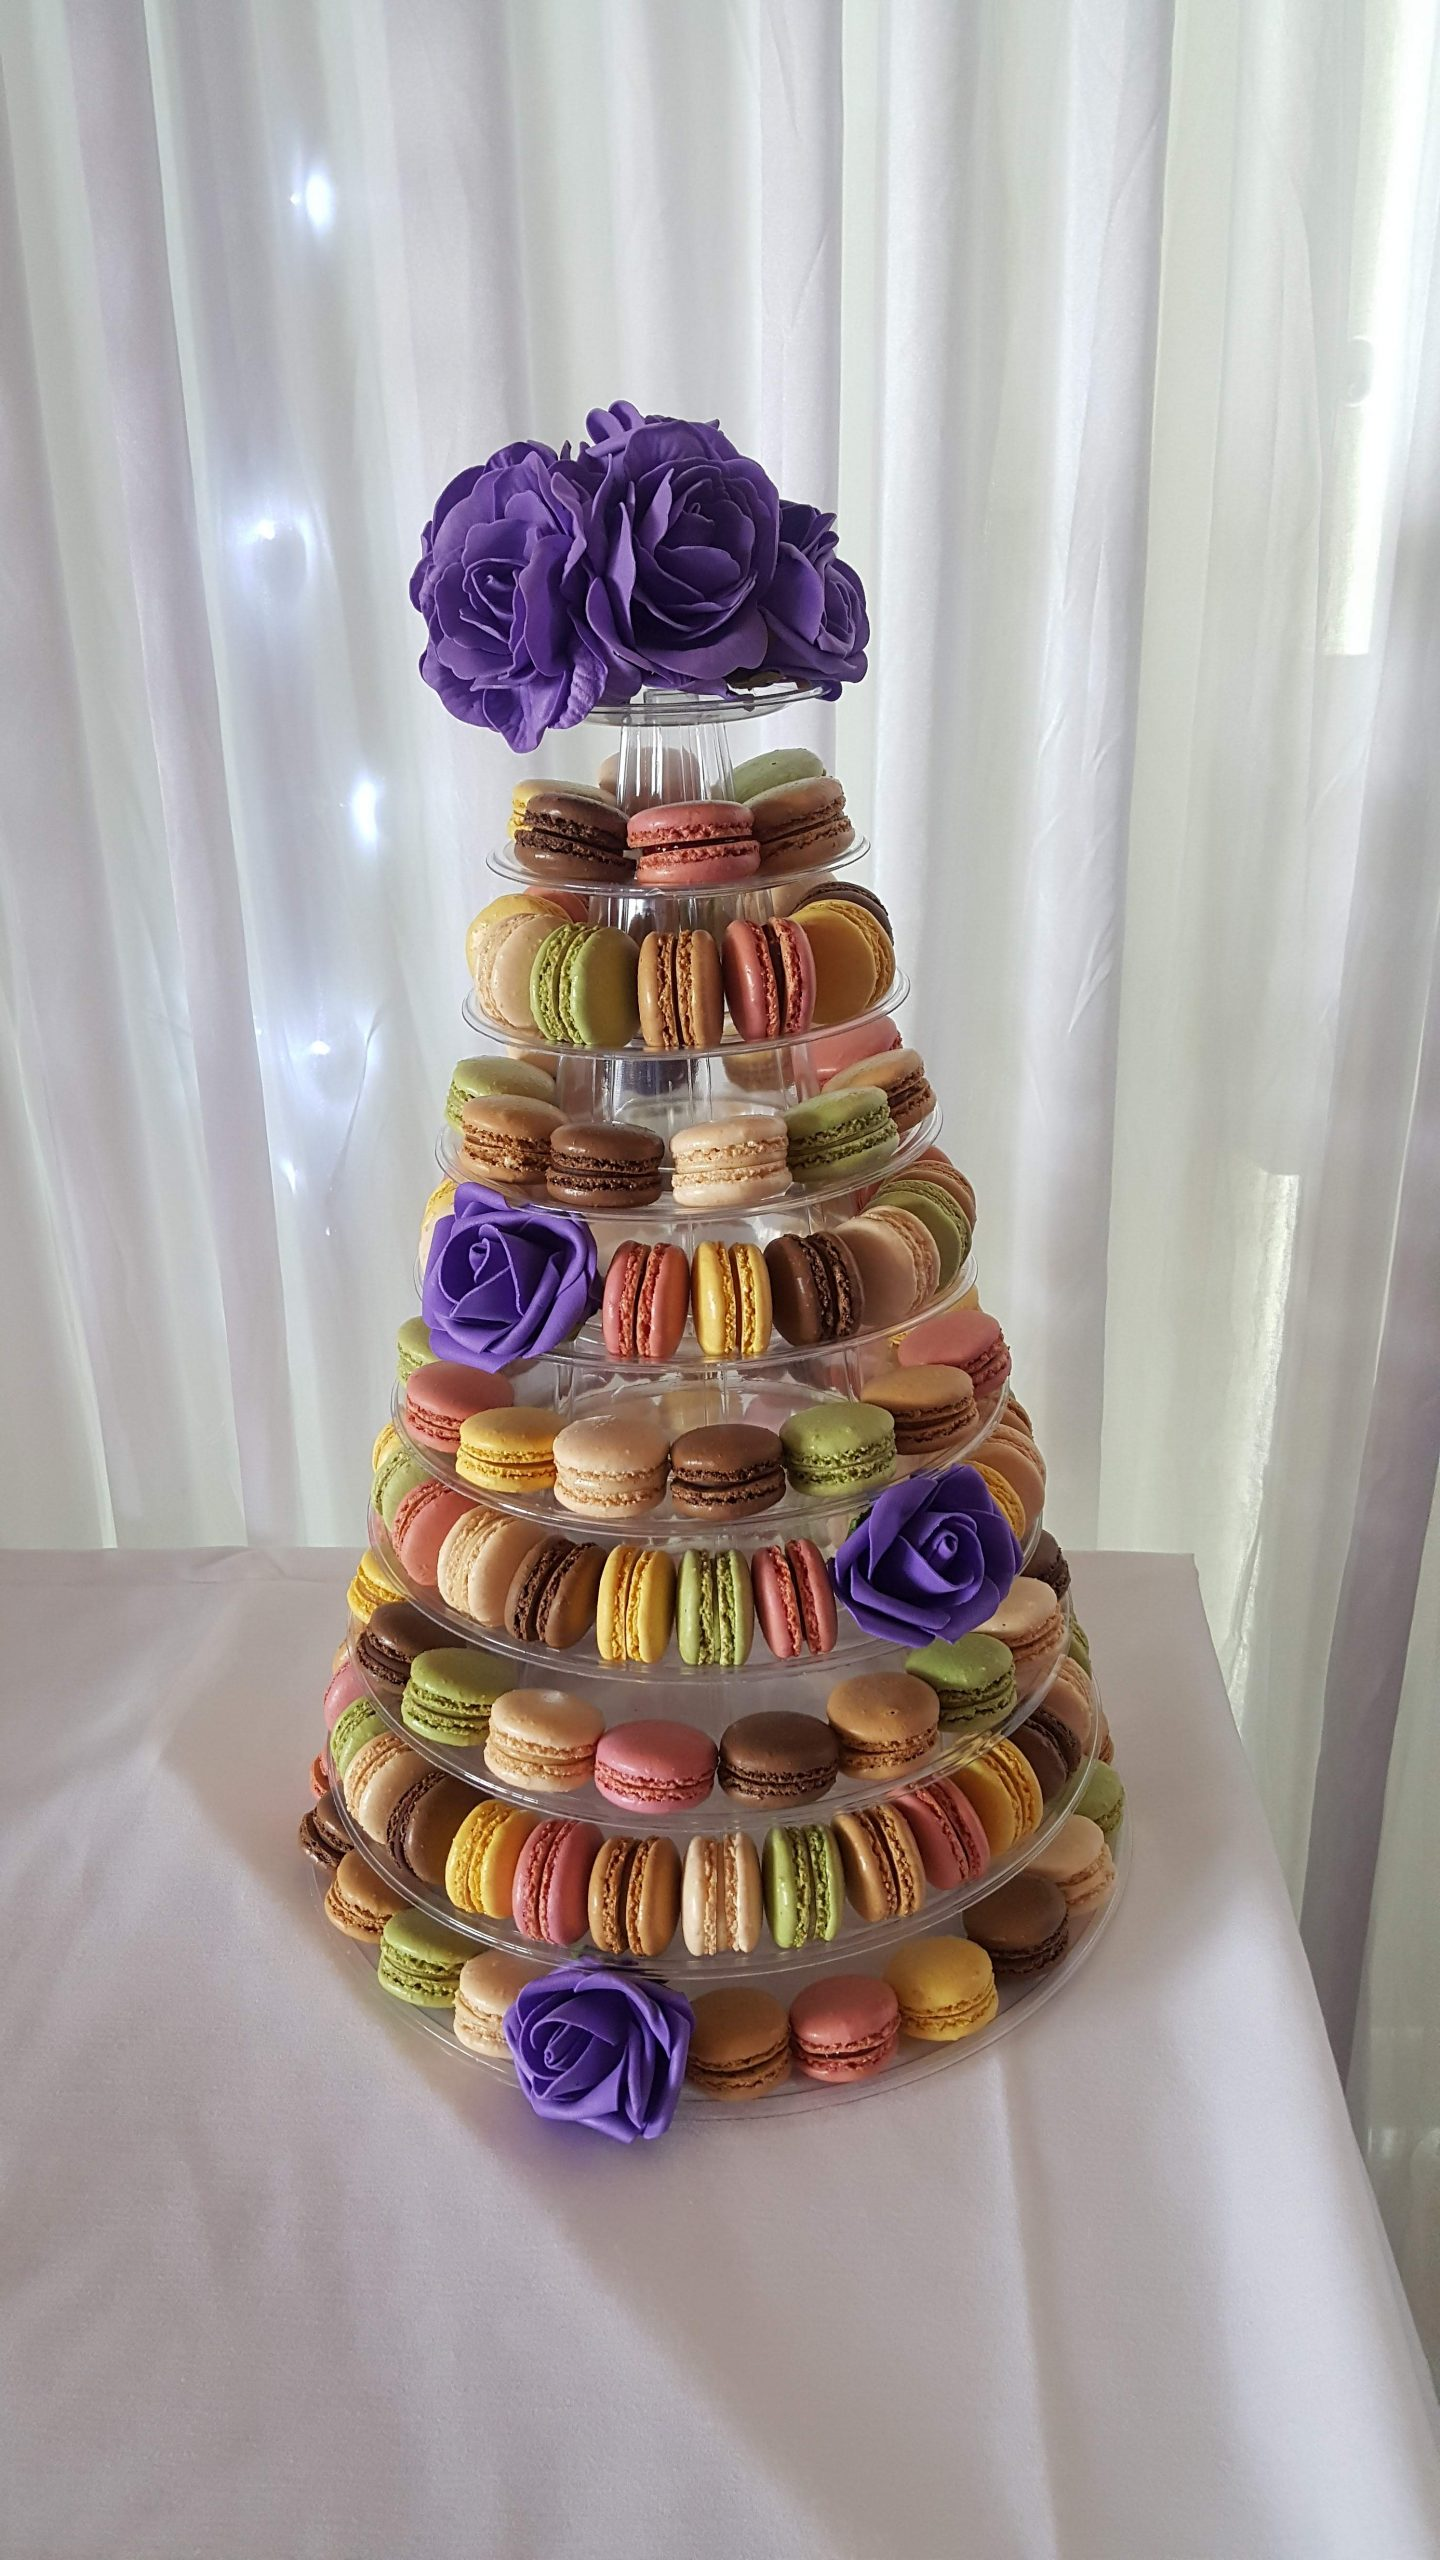 Fresh Macaroons Tower and Rose flowers